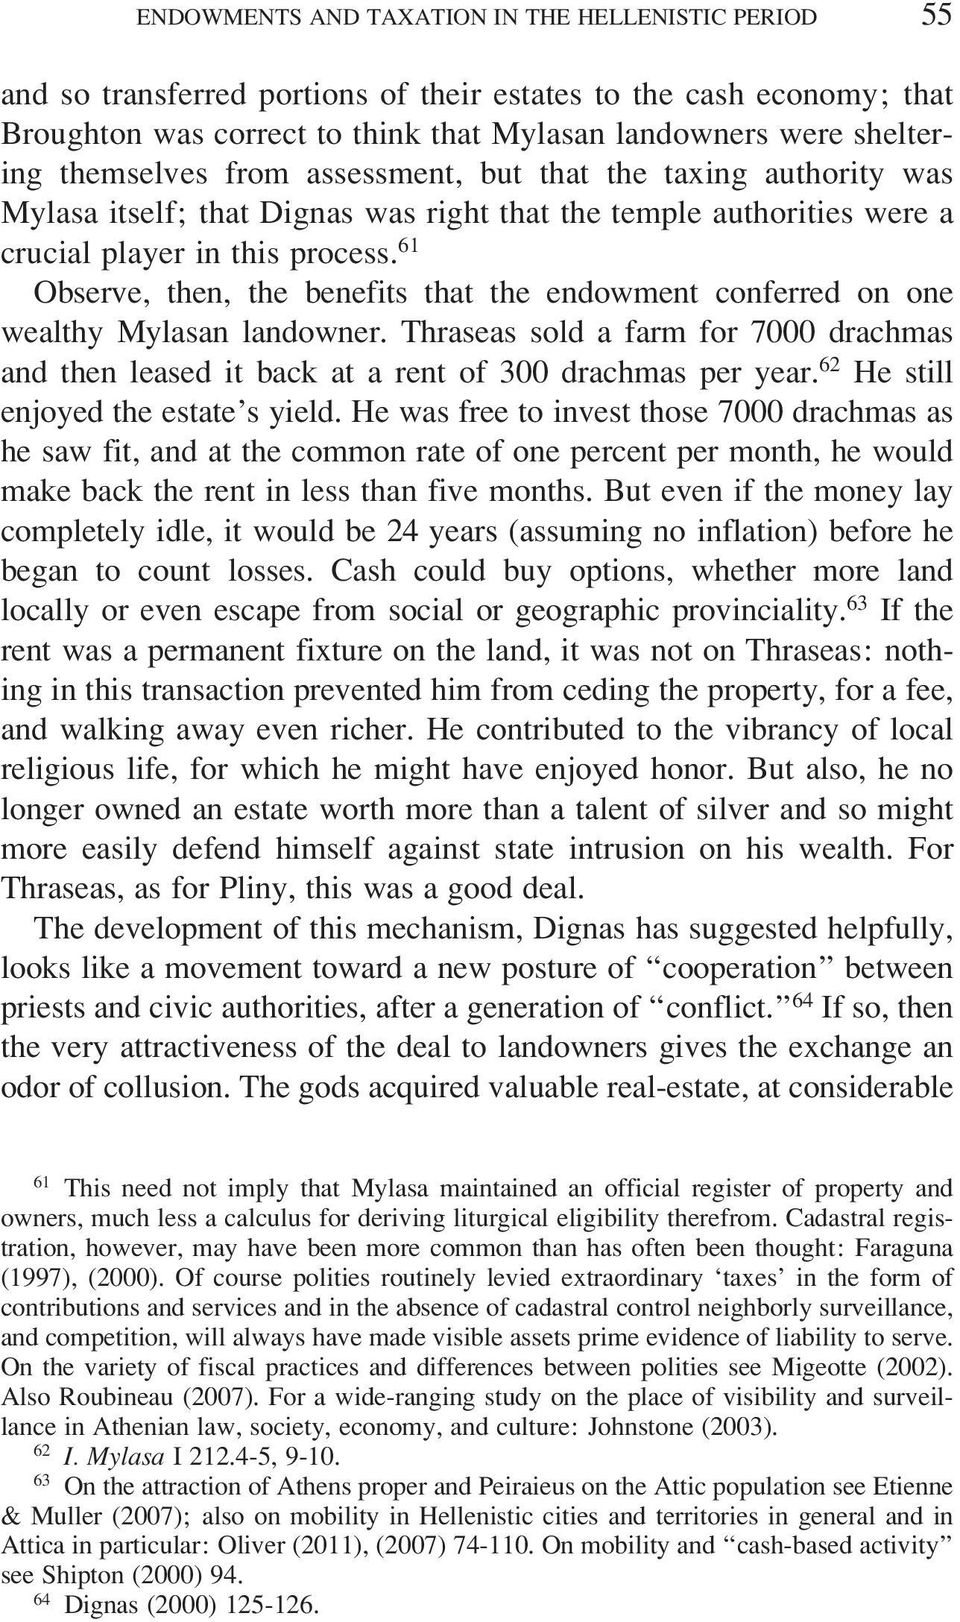 61 Observe, then, the benefits that the endowment conferred on one wealthy Mylasan landowner. Thraseas sold a farm for 7000 drachmas and then leased it back at a rent of 300 drachmas per year.